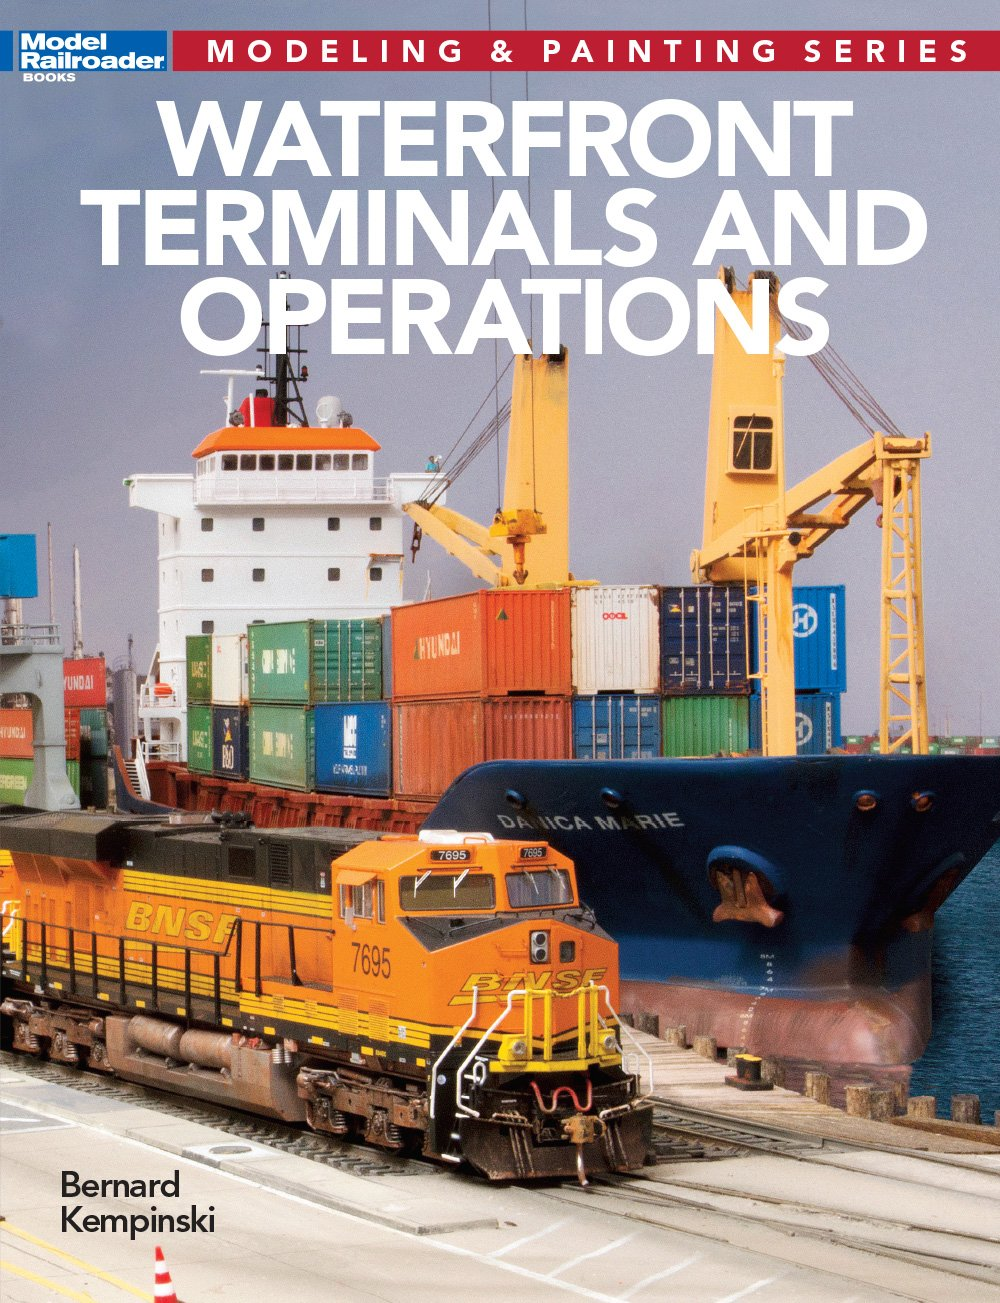 Waterfront Terminals Operations Modeling Painting product image